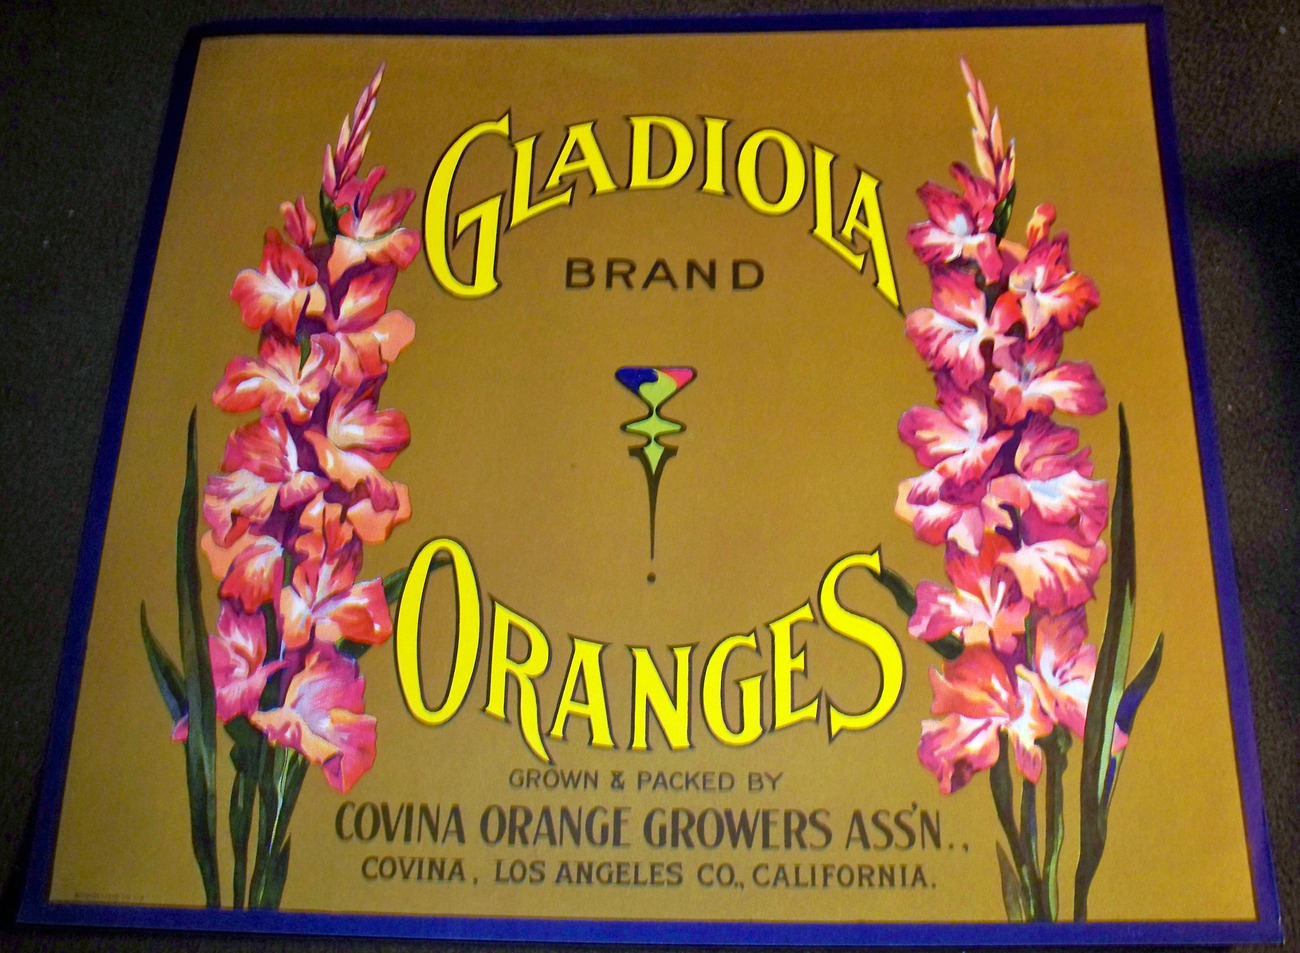 Gladiola crate label 001